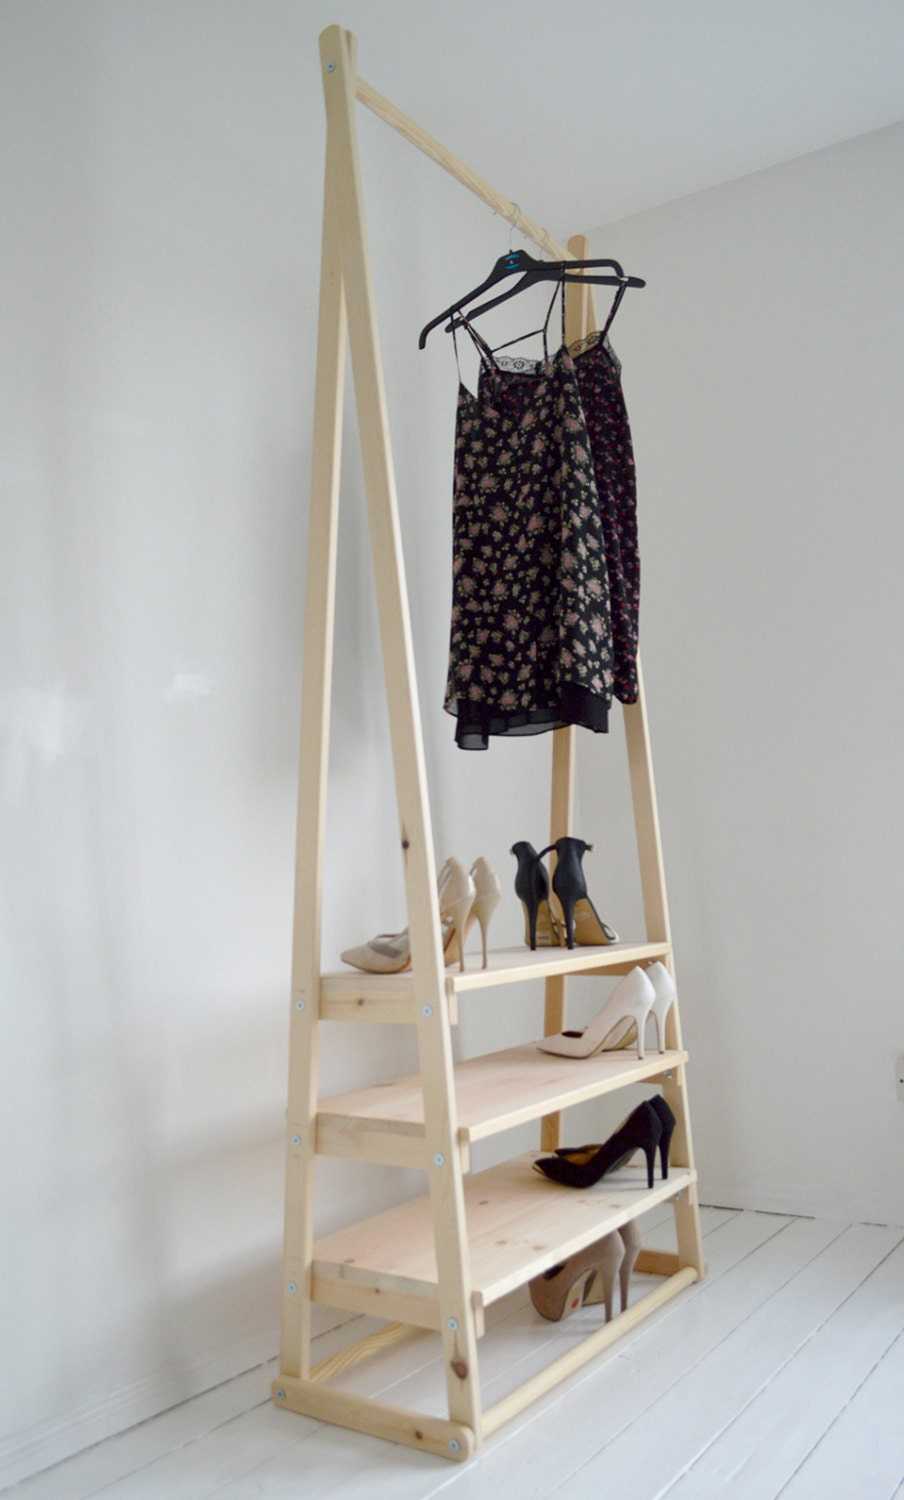 Handmade natural wood clothes rack rail with